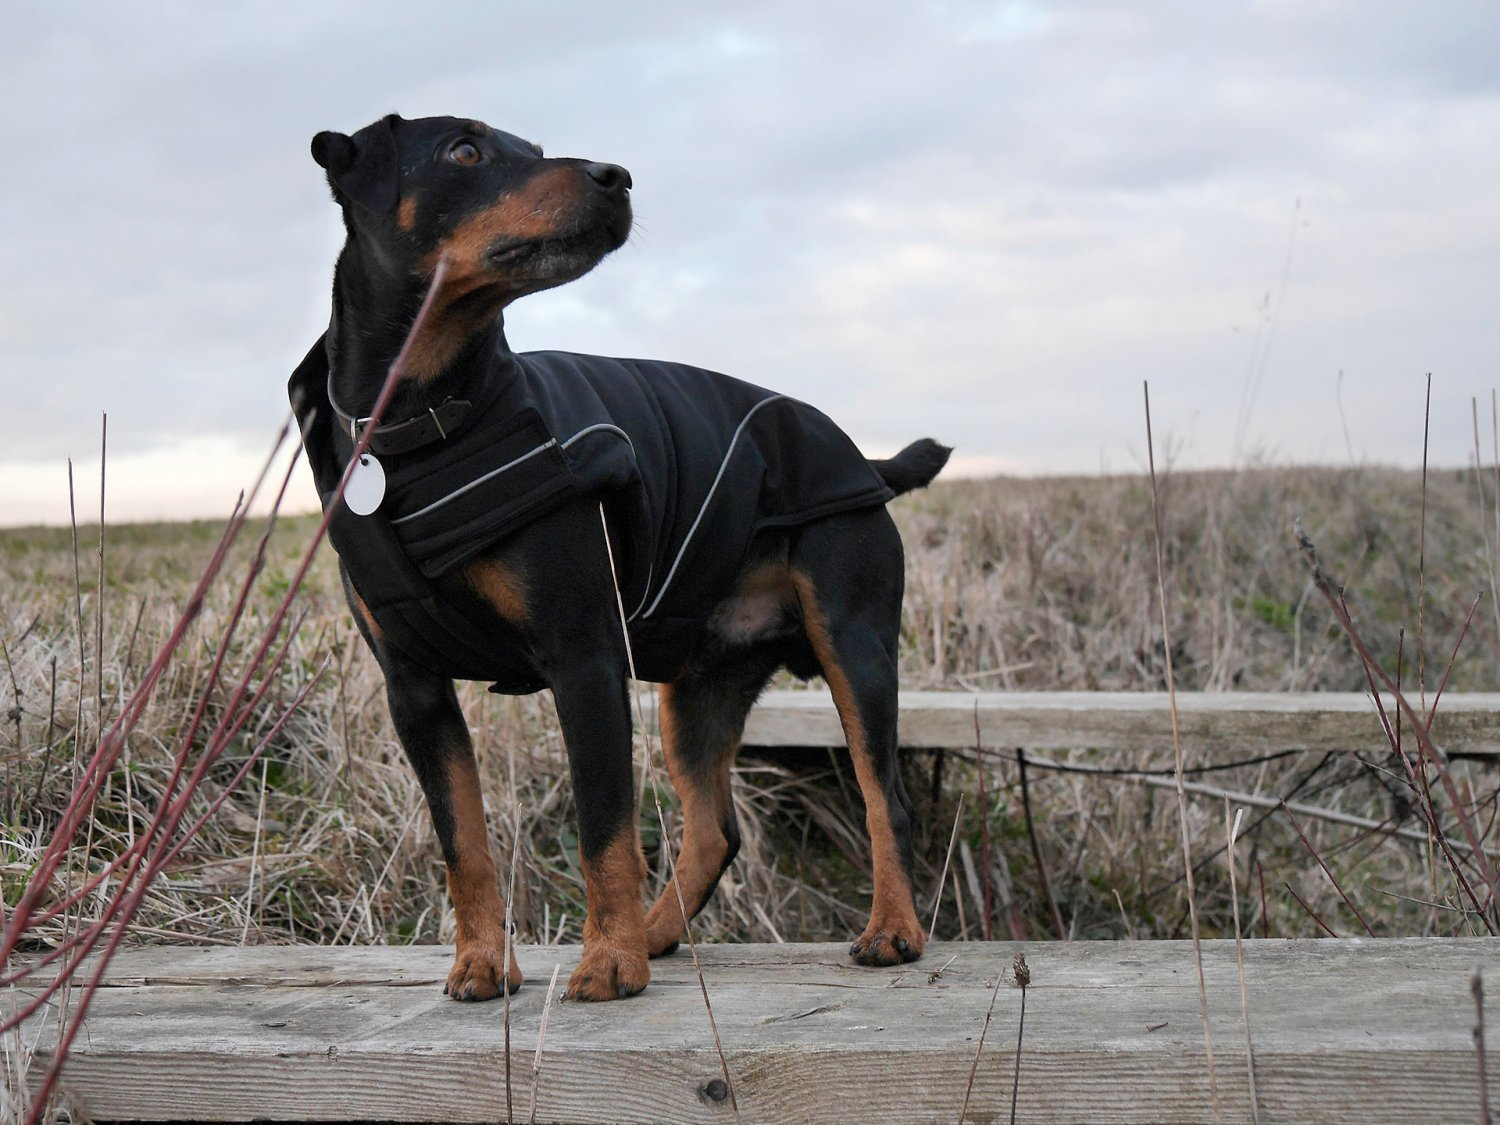 Dog Soft-Shell Winter Jacket w/ Fleece Lining Special Edition Color Black (M) 13-3/4 inch - 35cm